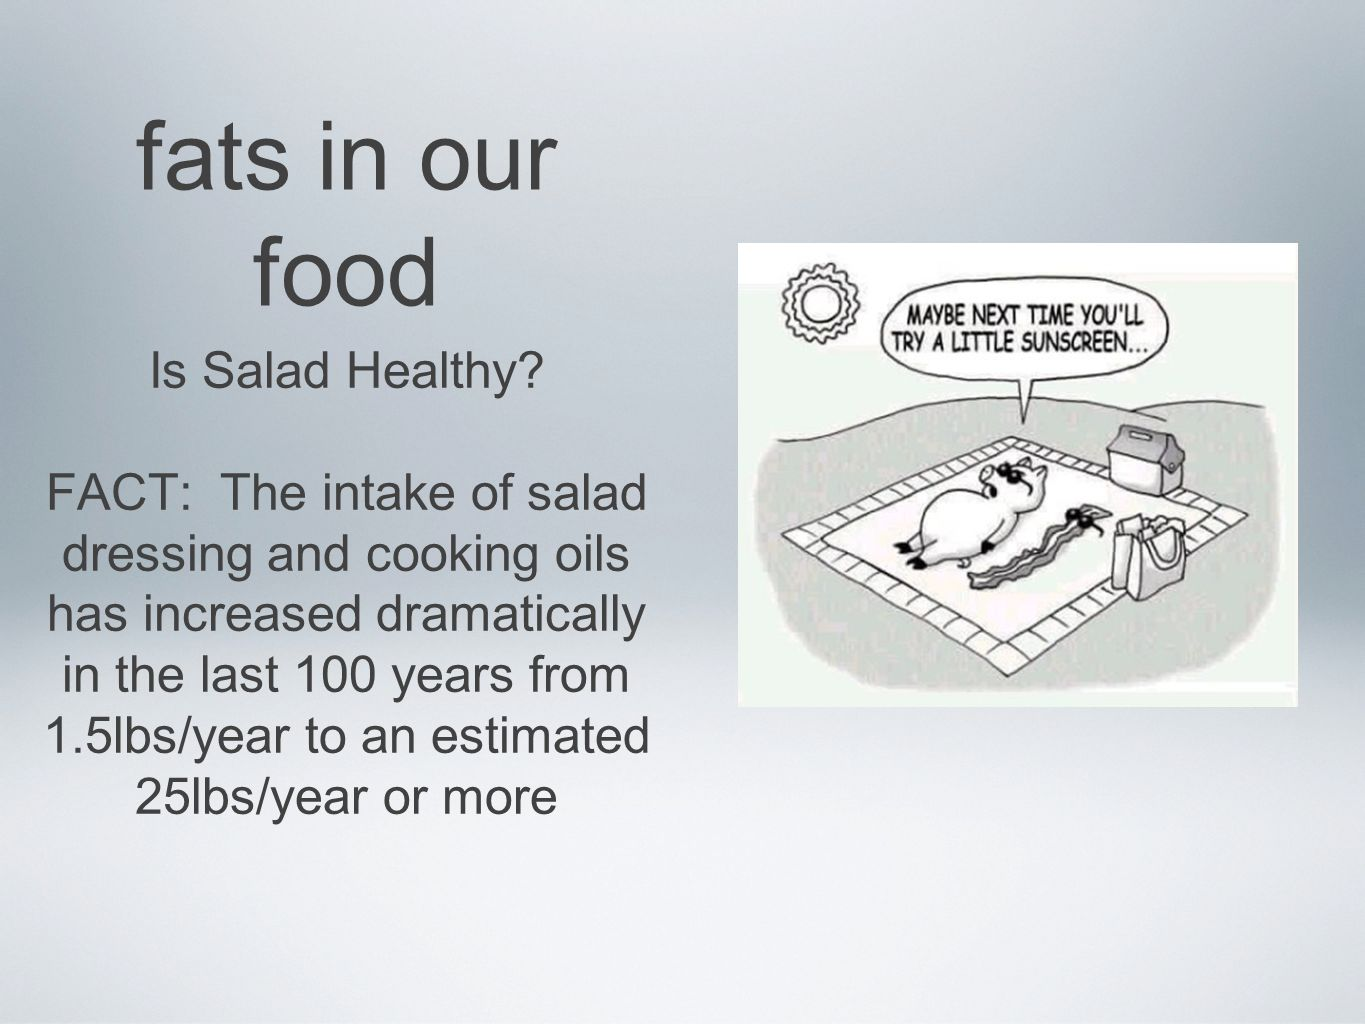 fats in our food Is Salad Healthy.